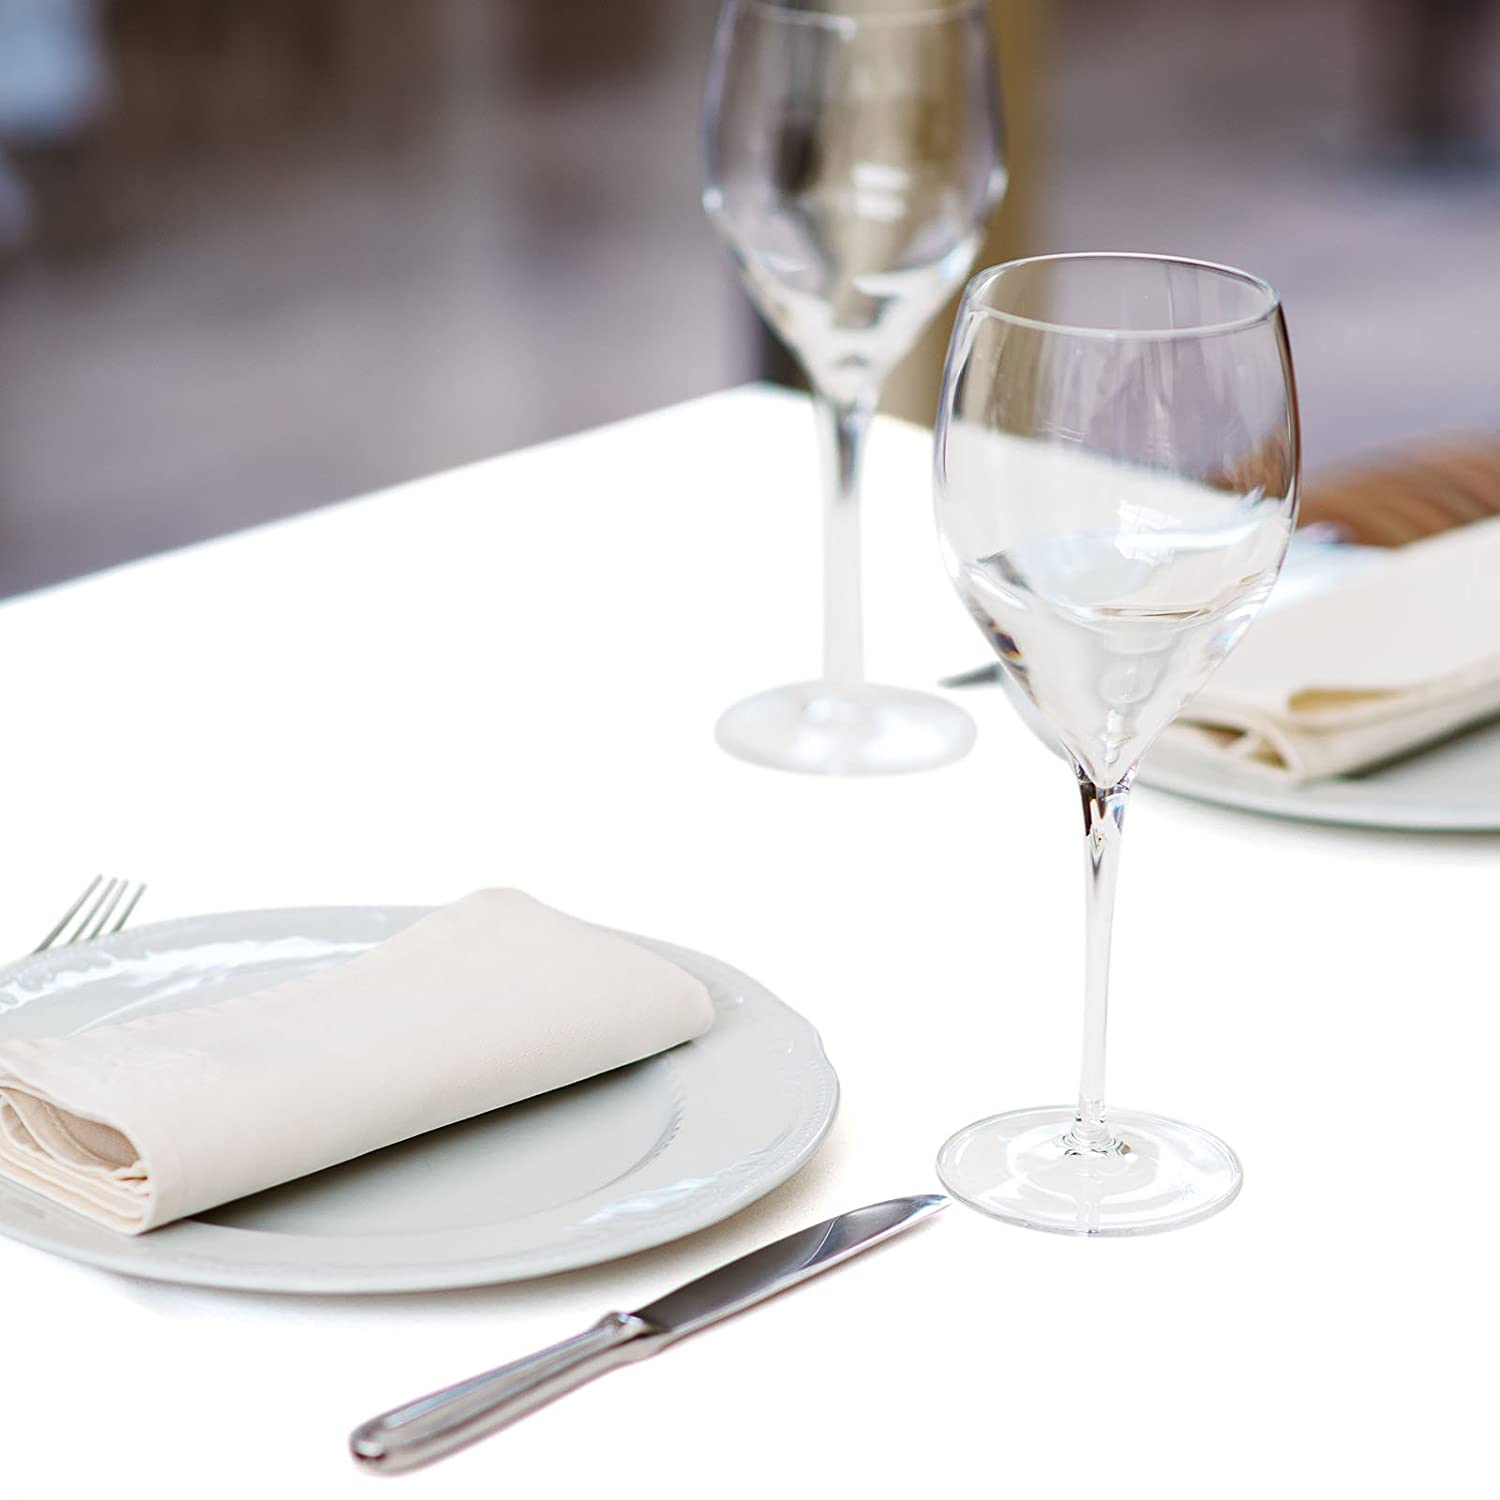 Lanns Linens Polyester Fabric Table Cloth White 54 Square Premium Tablecloth for Wedding//Banquet//Restaurant